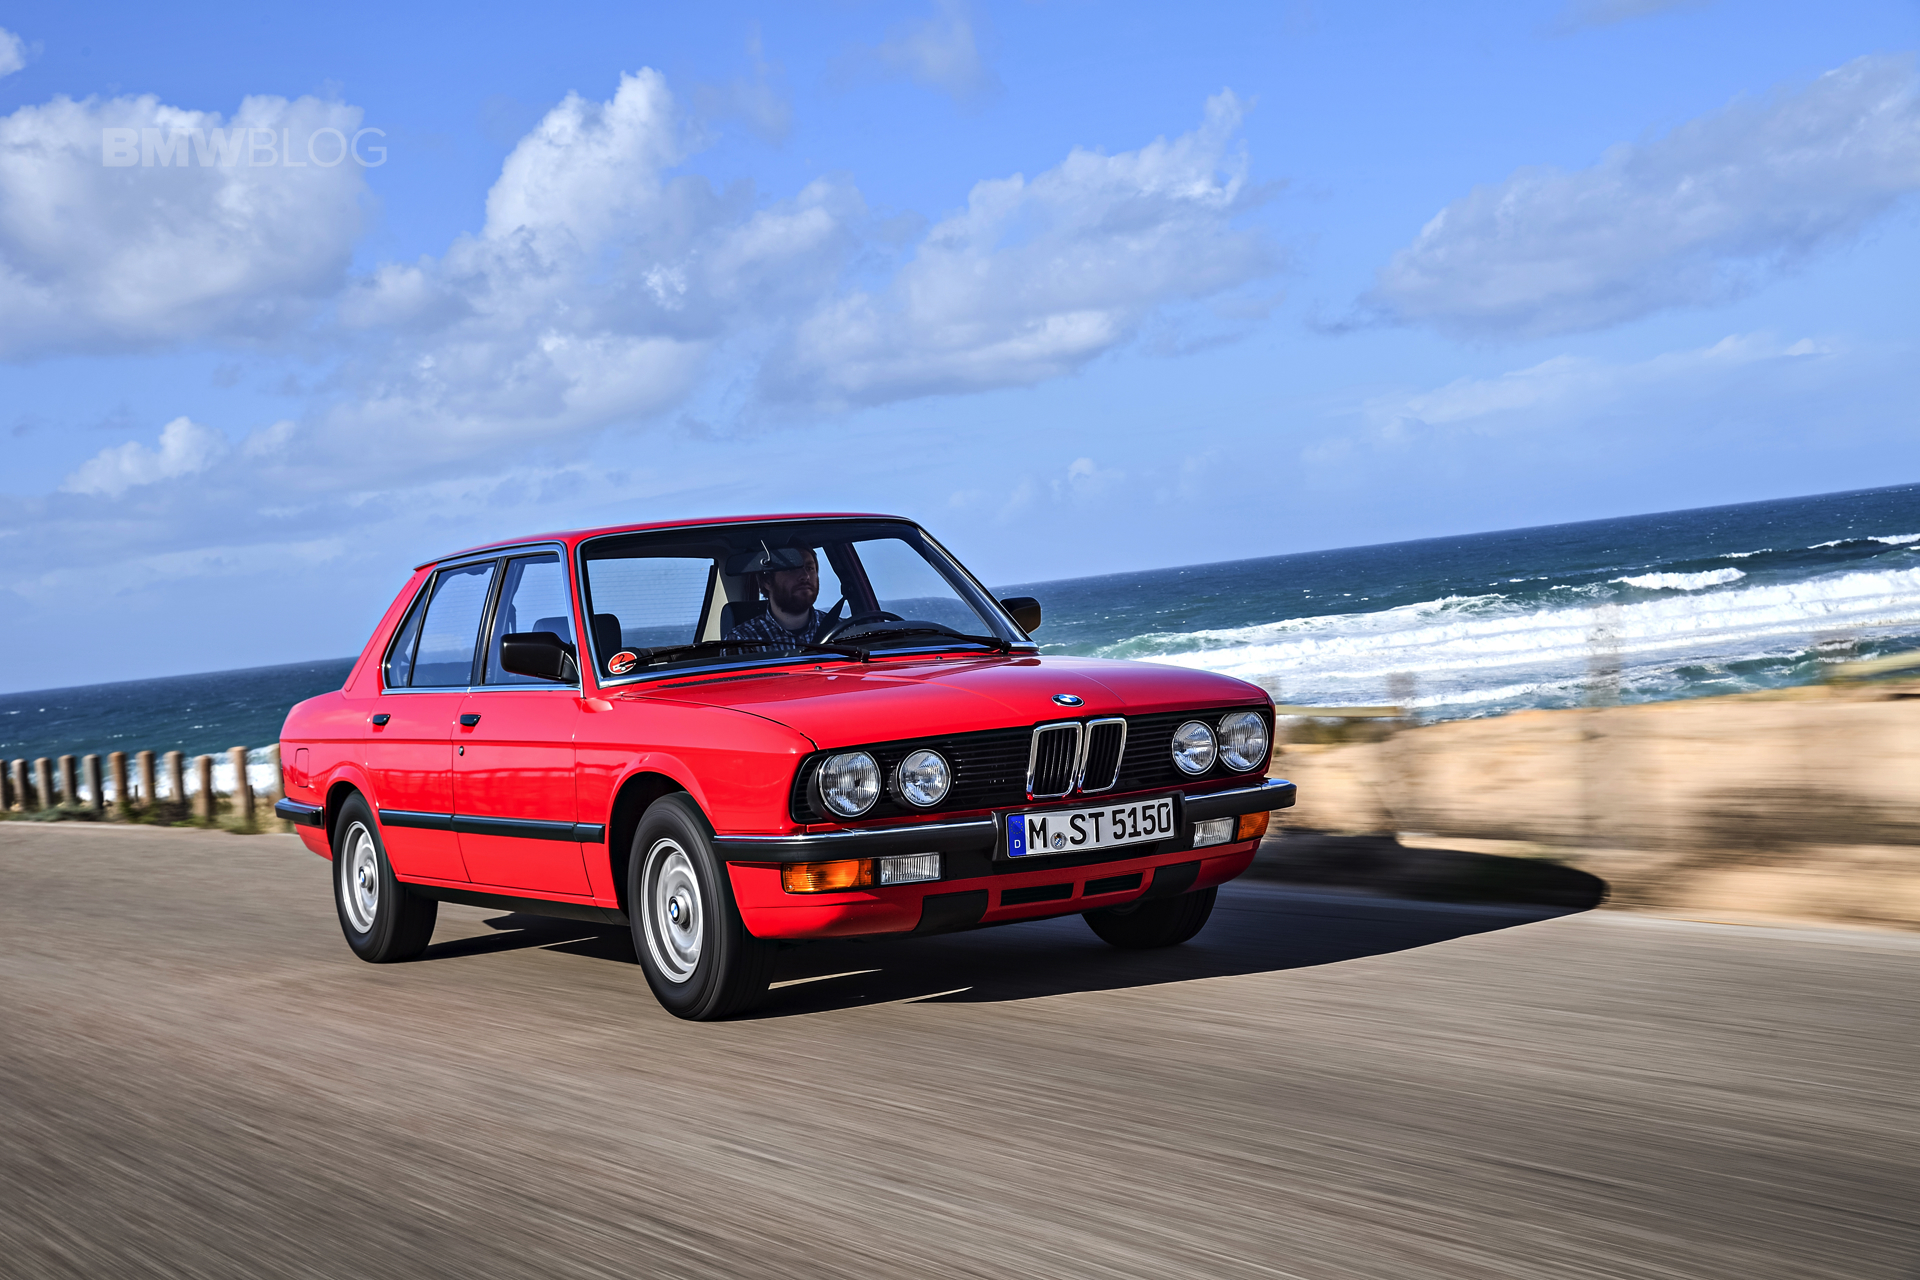 Bmw 5 Series History The 2nd Generation E28